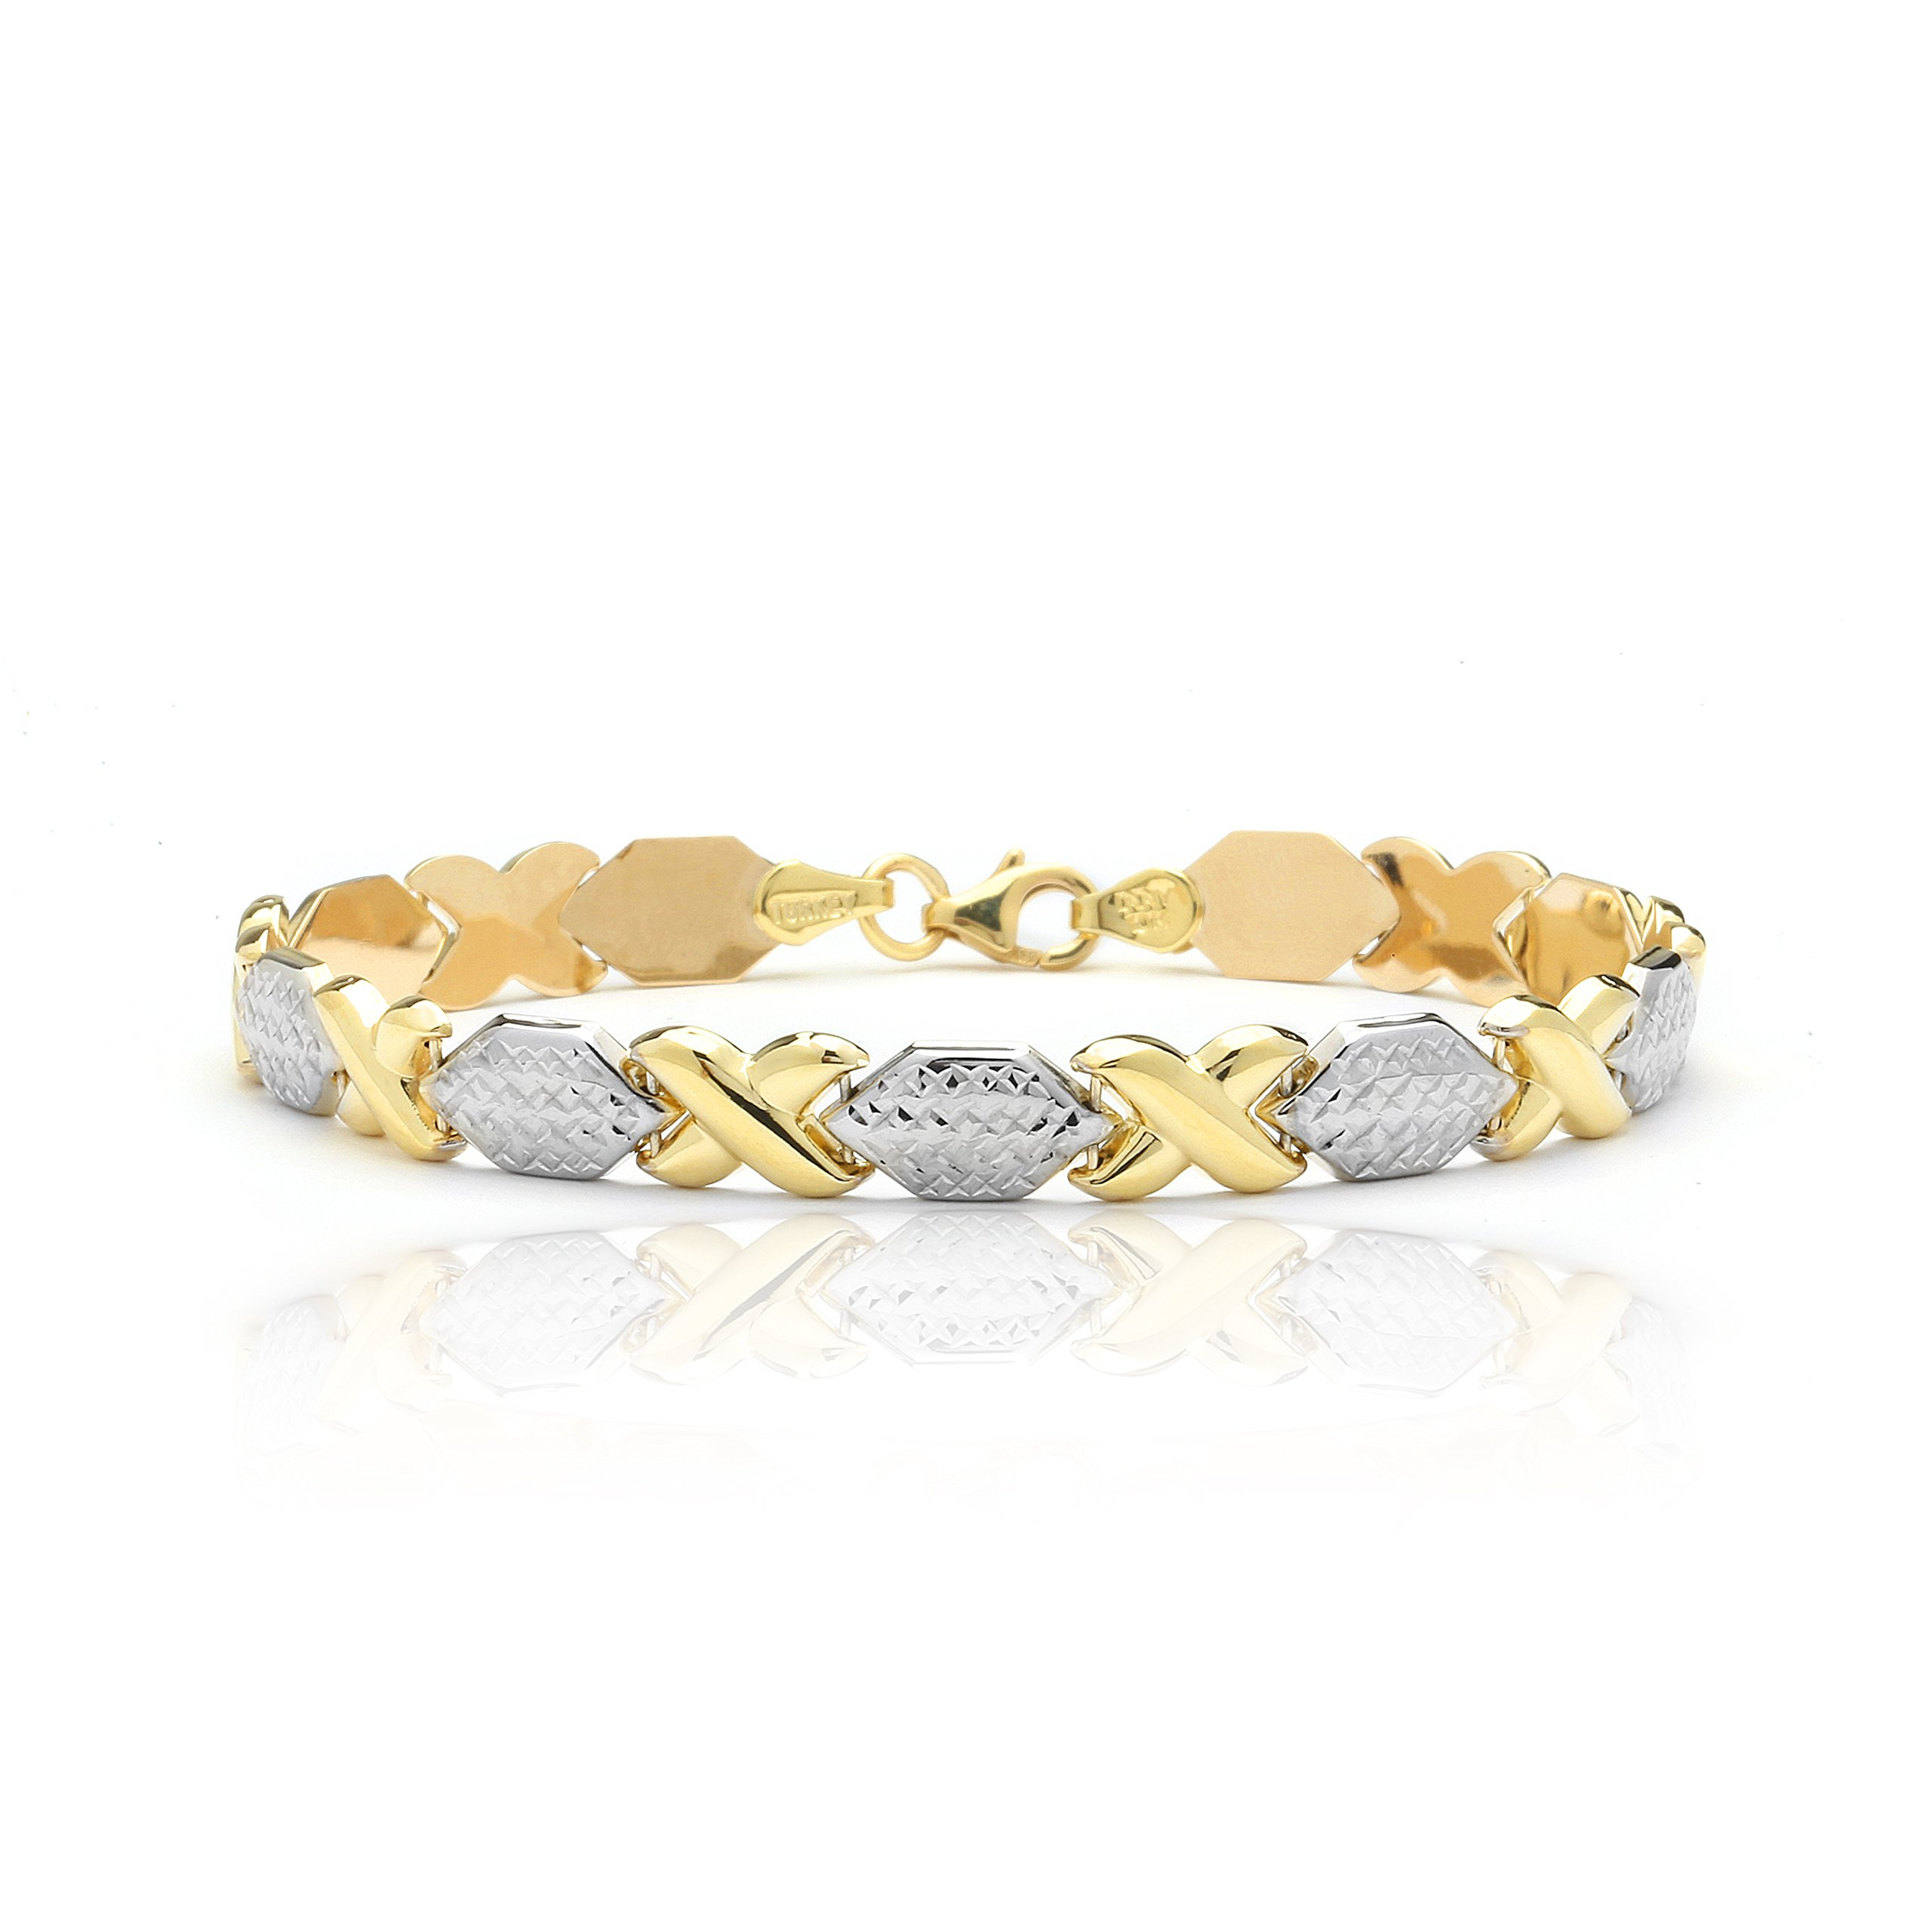 7 Inch 10k Two-Tone Yellow and White Gold Stampato Xoxo X & O Hugs Kisses Love Chain Bracelet by SL Gold Imports